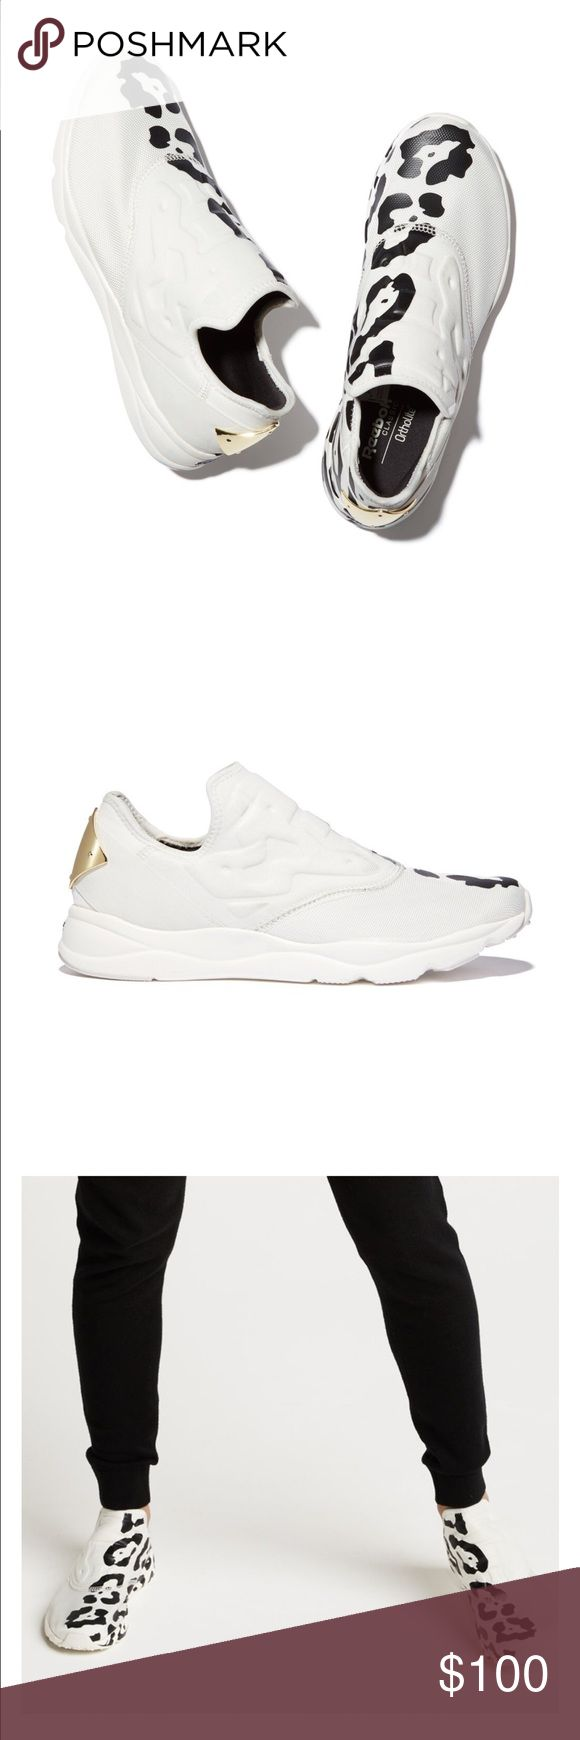 NWT Reebok furylite slip-on sneakers NWT Reebok furylite slip-on sneakers   goop exclusive print, completely sold out!  The black-on-white rosette print and mirrored gold accent heel makes these comfortable, breathable, slip-on performance sneakers as chic as they are functional. Reebok Shoes Sneakers